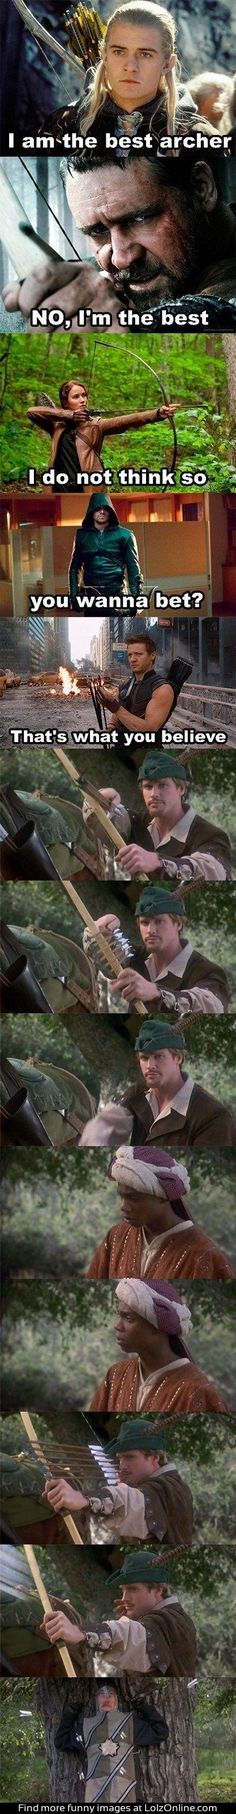 I Am The Best Archer